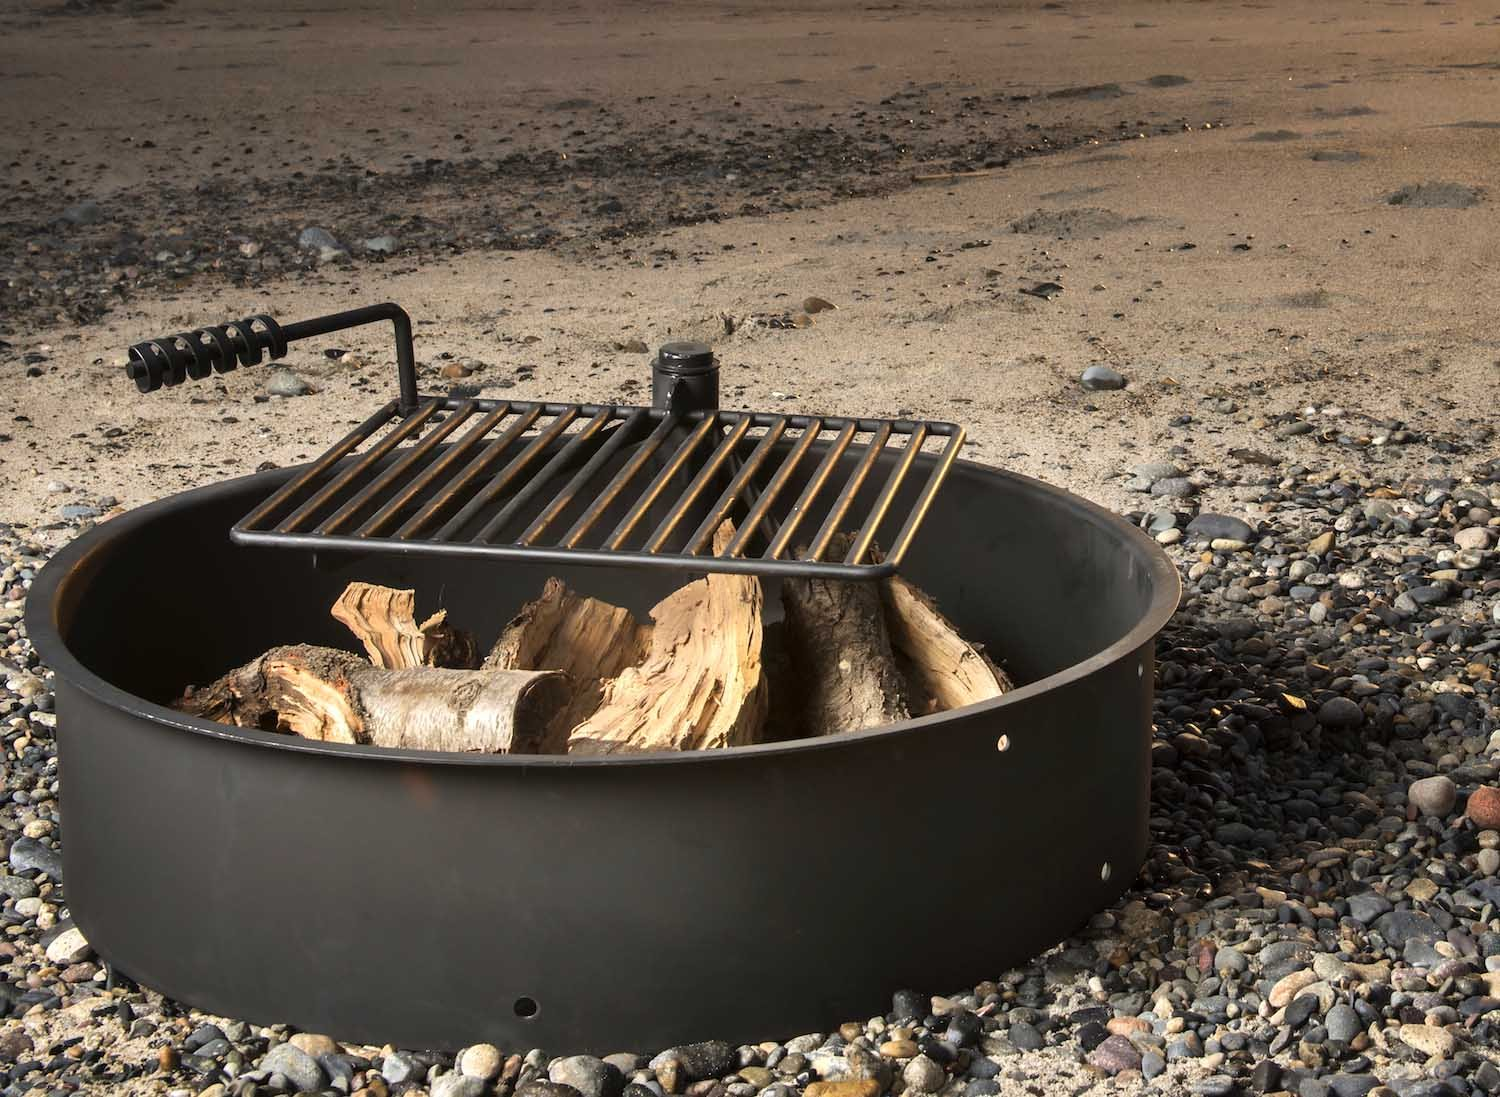 36'' Steel Fire Ring with Cooking Grate Campfire Pit Park Grill BBQ Camping Trail by Titan Outdoors (Image #2)